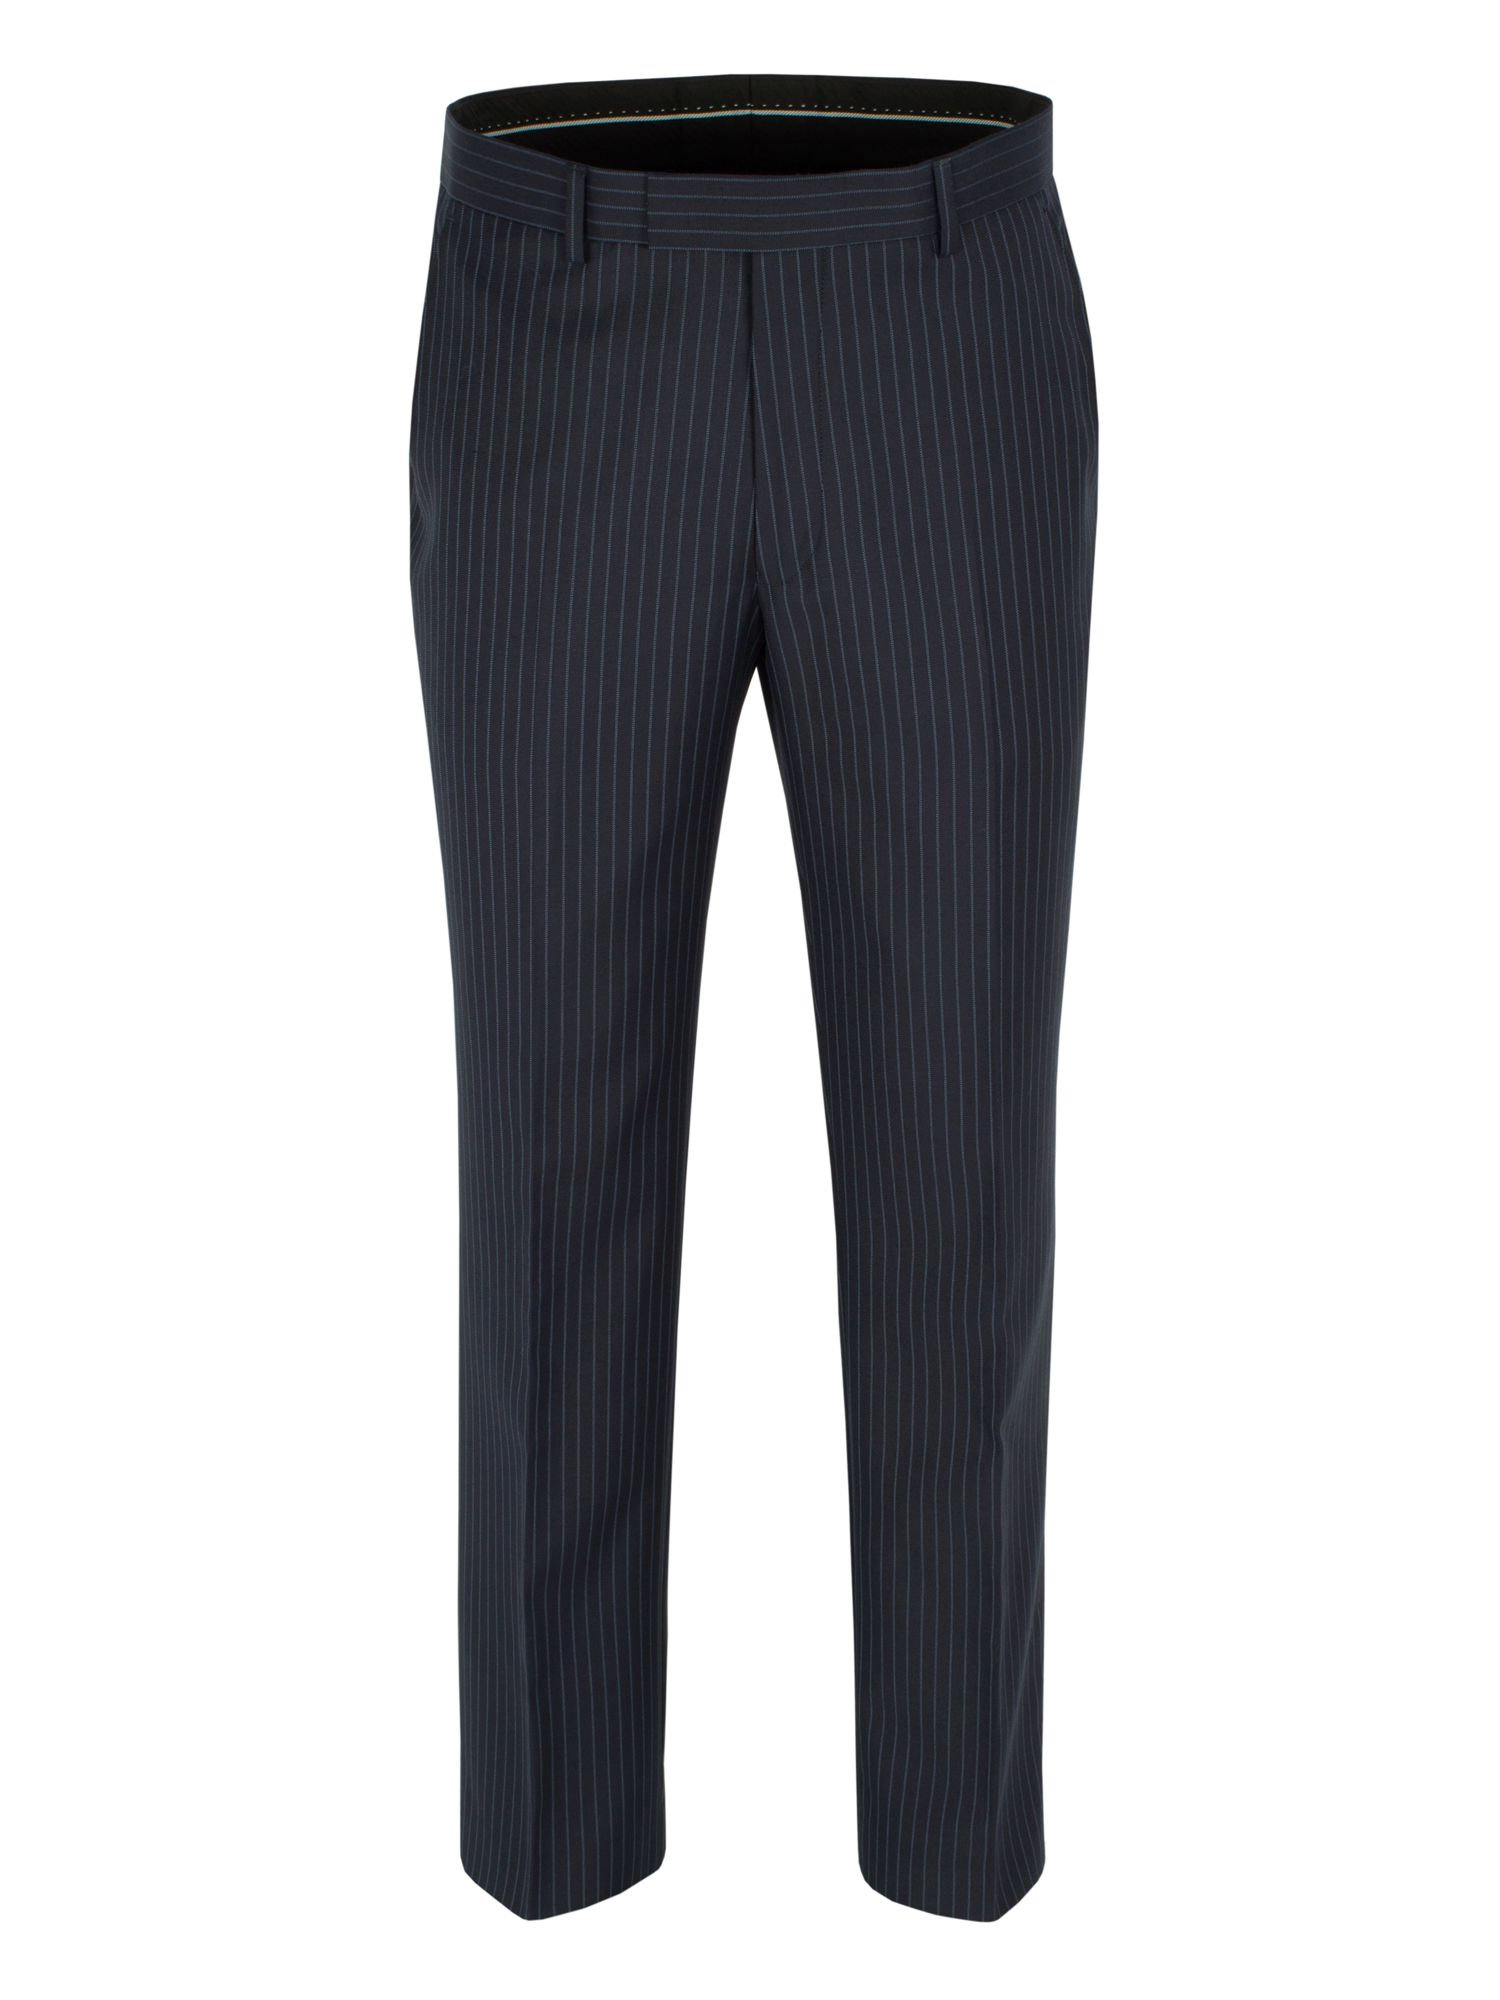 Stripe formal suit trousers